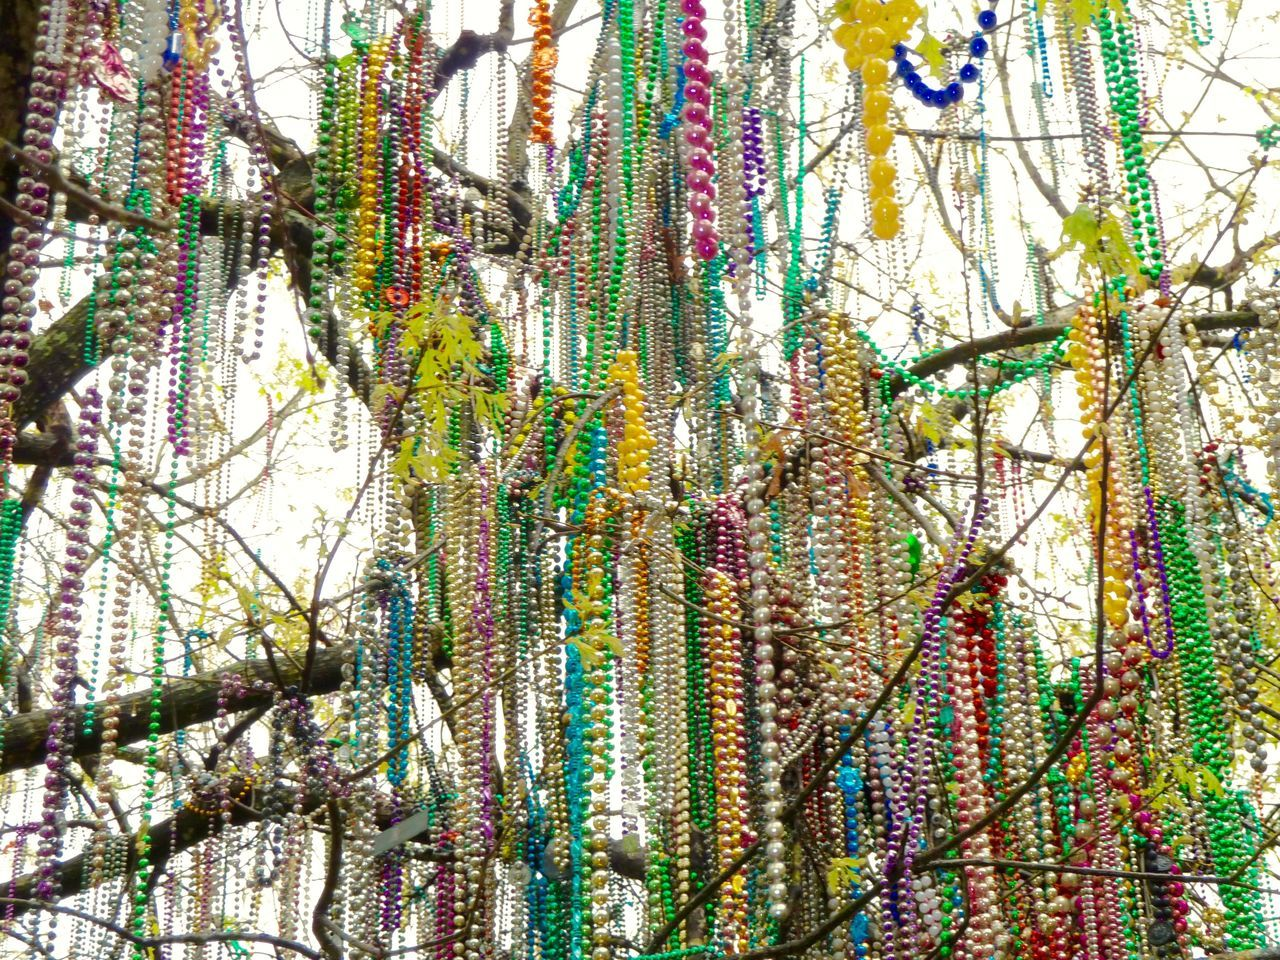 Tree Mardi Gras Beads Colorful Tulane University New Orleans Mardi Gras Adorned No People Outside After The Party